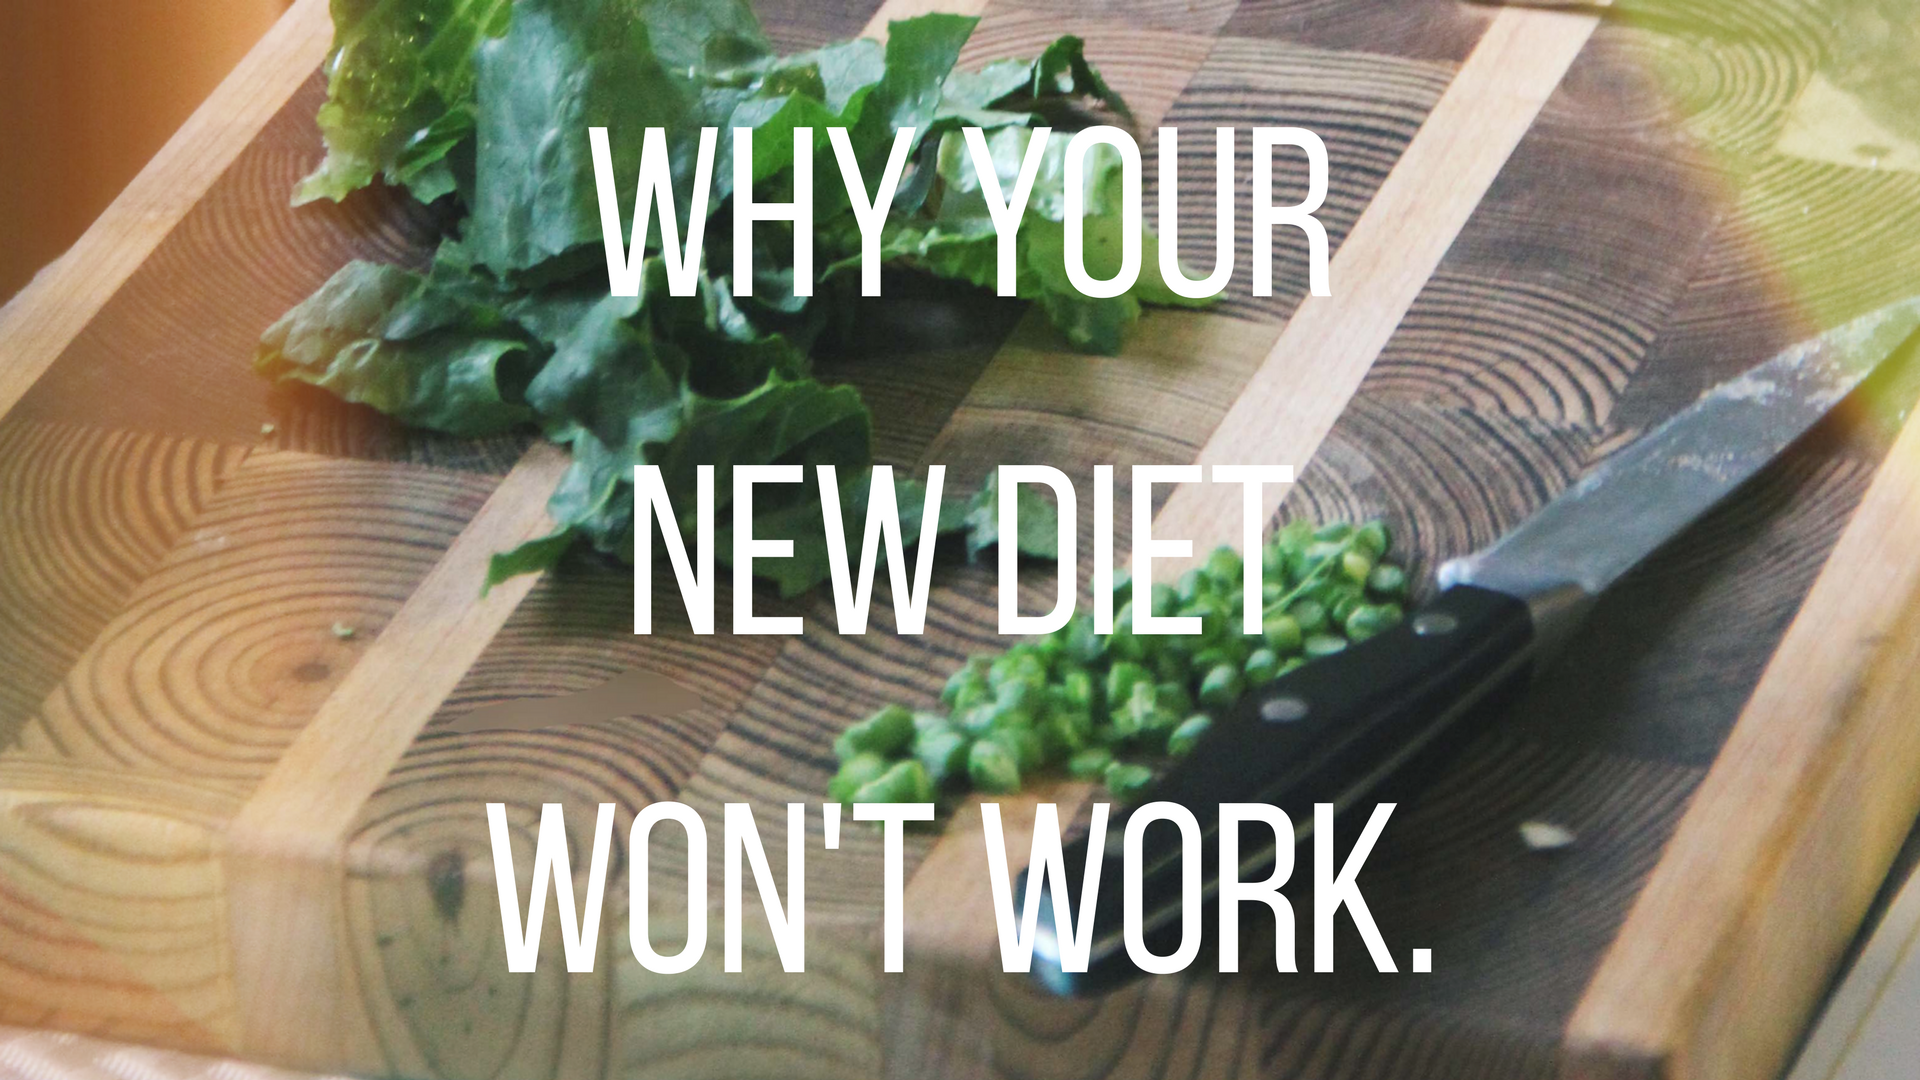 why-your-new-diet-wont-work.png